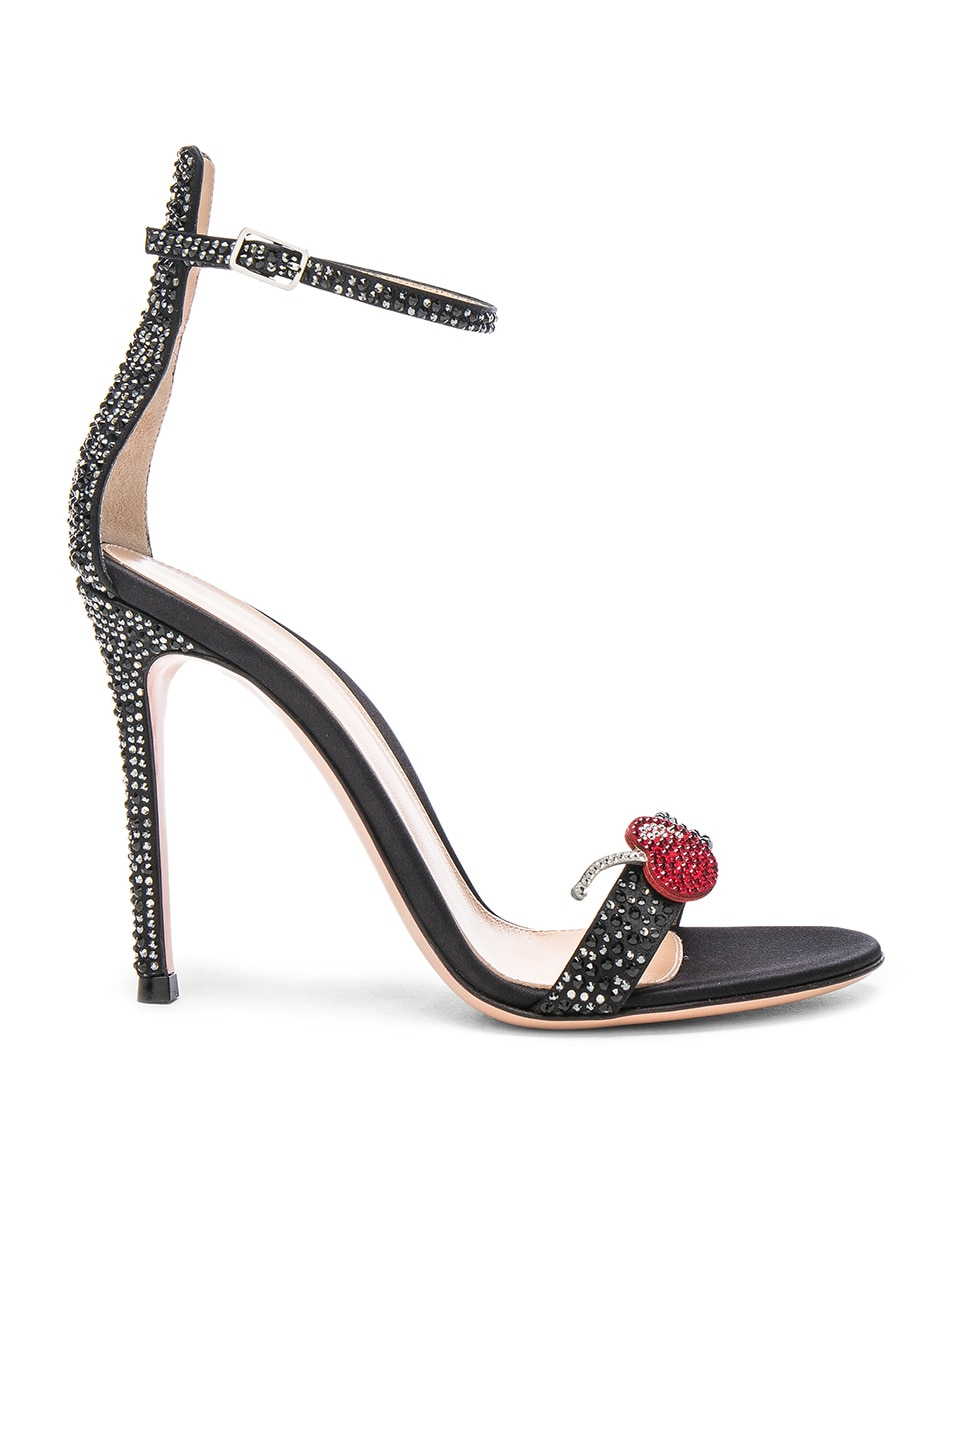 Image 1 of Gianvito Rossi Crystal Embellished Ankle Strap Sandals in Black